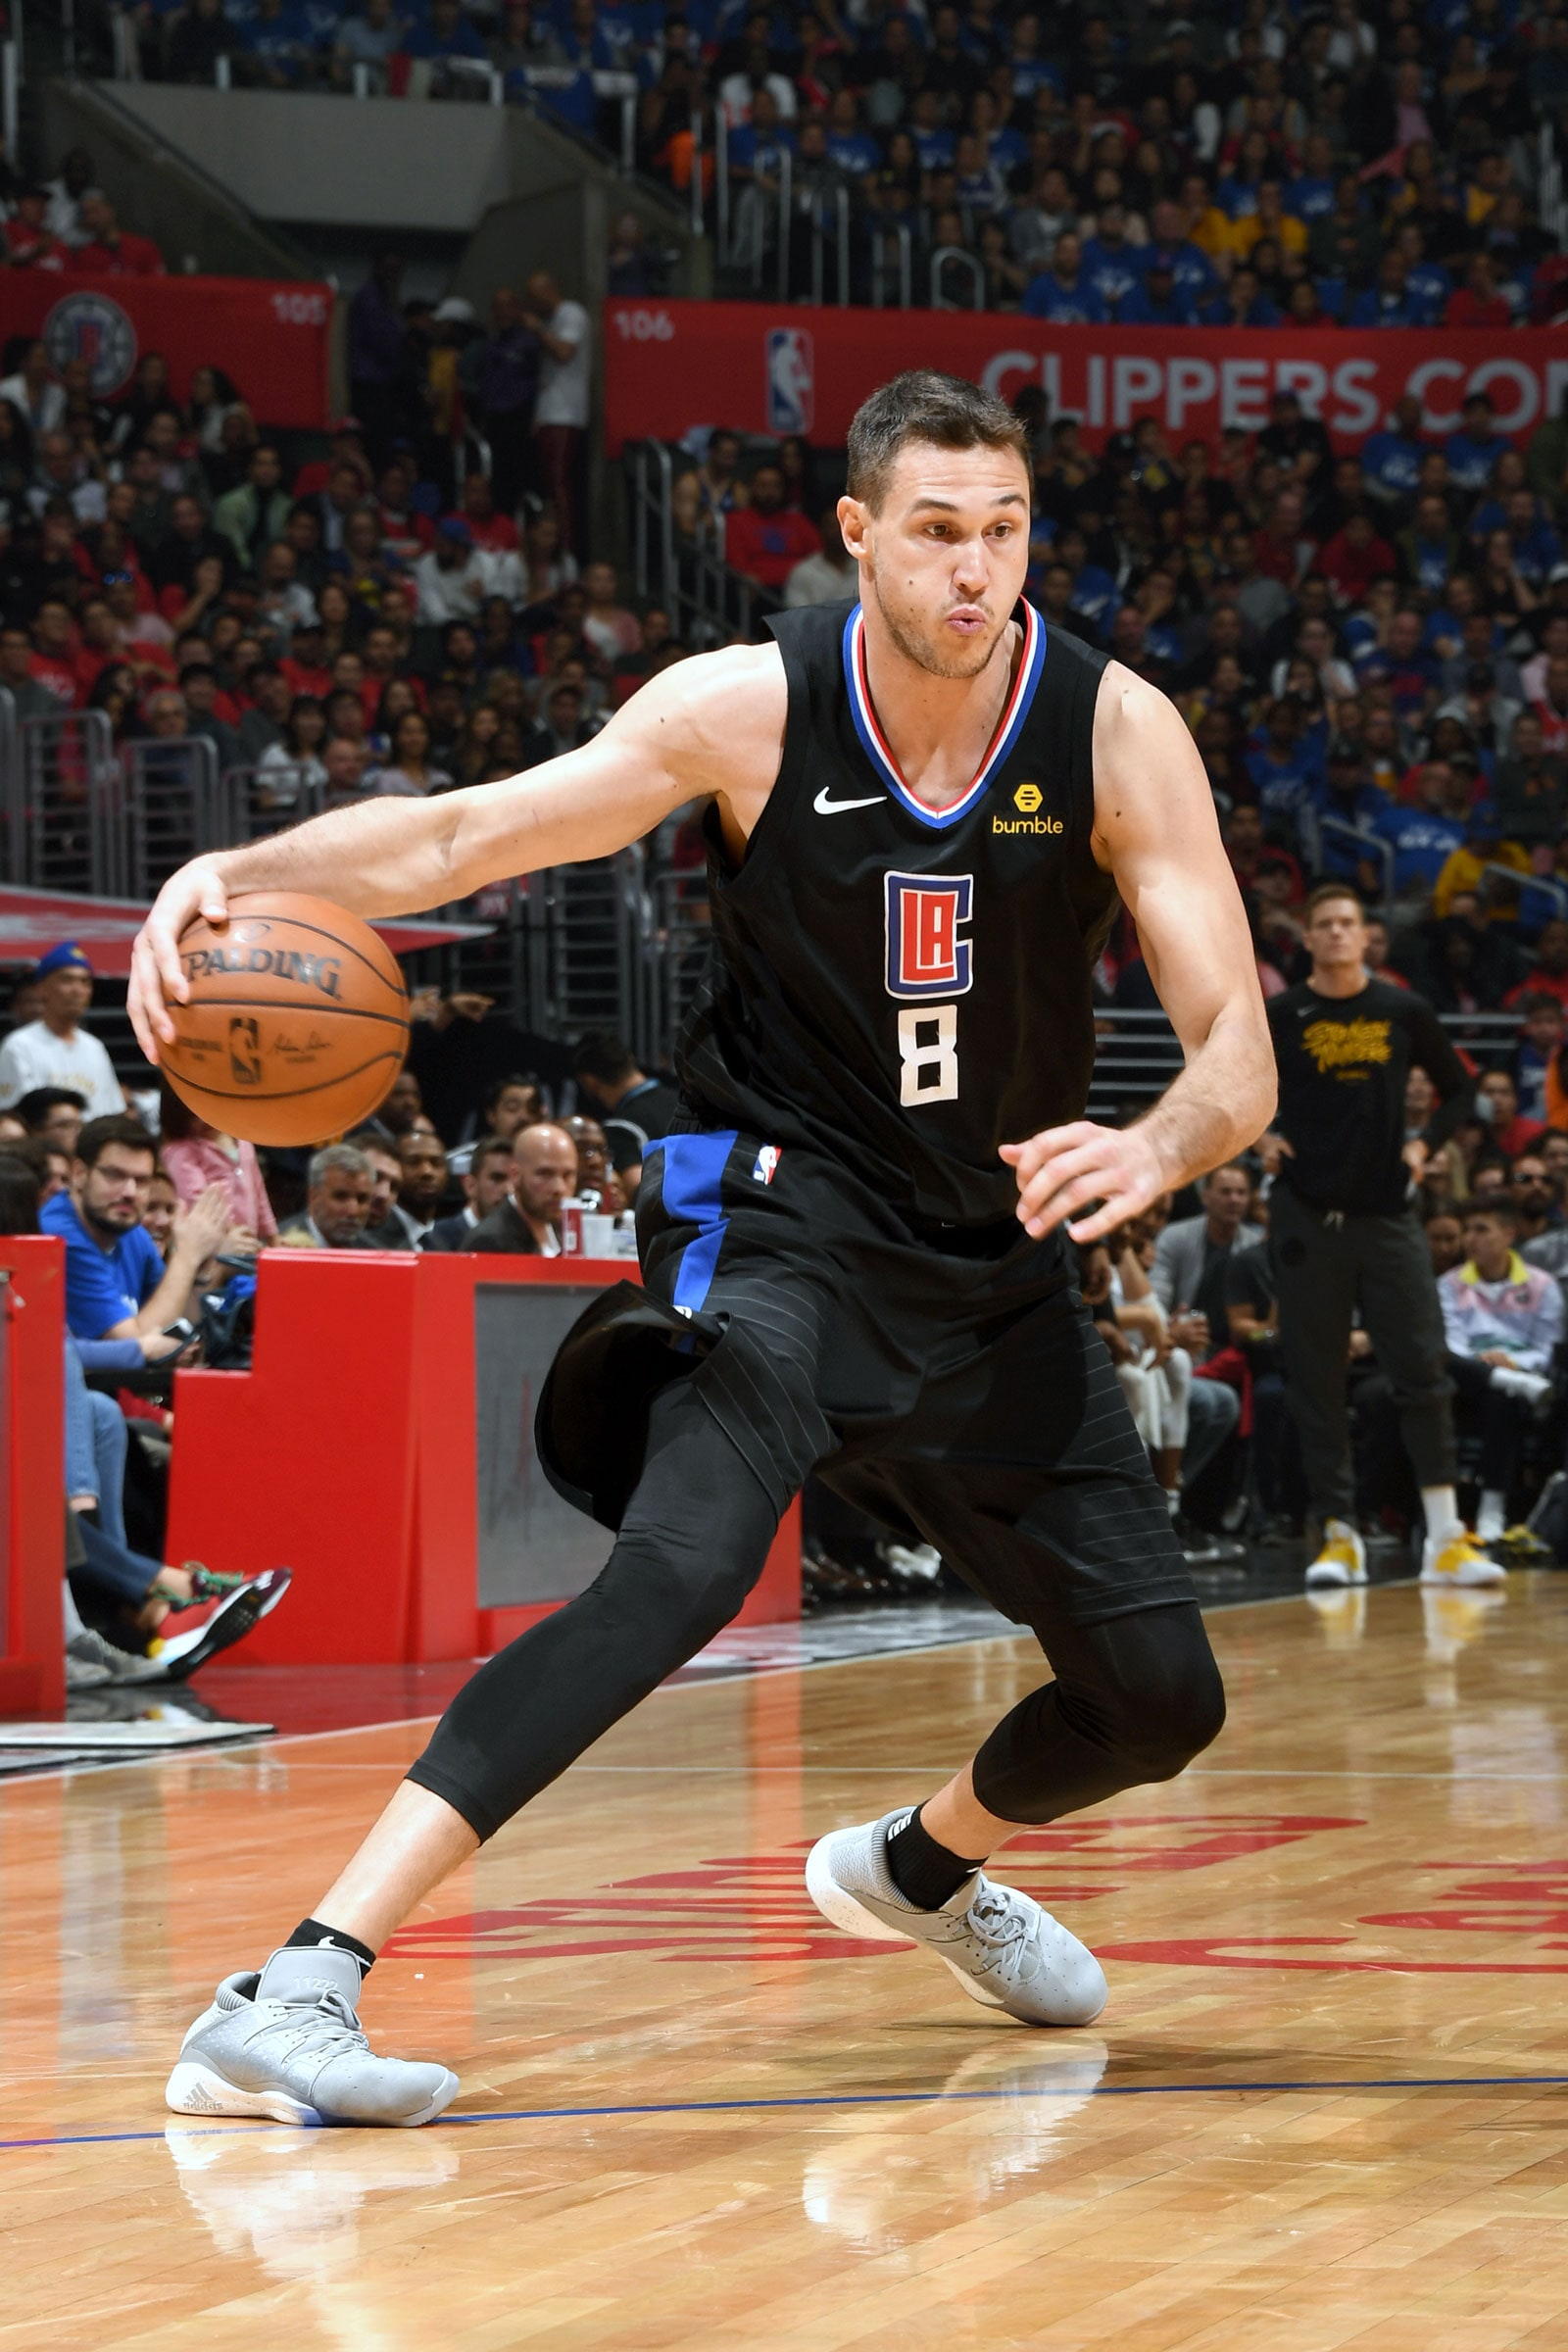 Danilo Gallinari #8 of the LA Clippers handles the ball against the Golden State Warriors during Game Six of Round One of the 2019 NBA Playoffs on April 26, 2019 at STAPLES Center in Los Angeles, California.